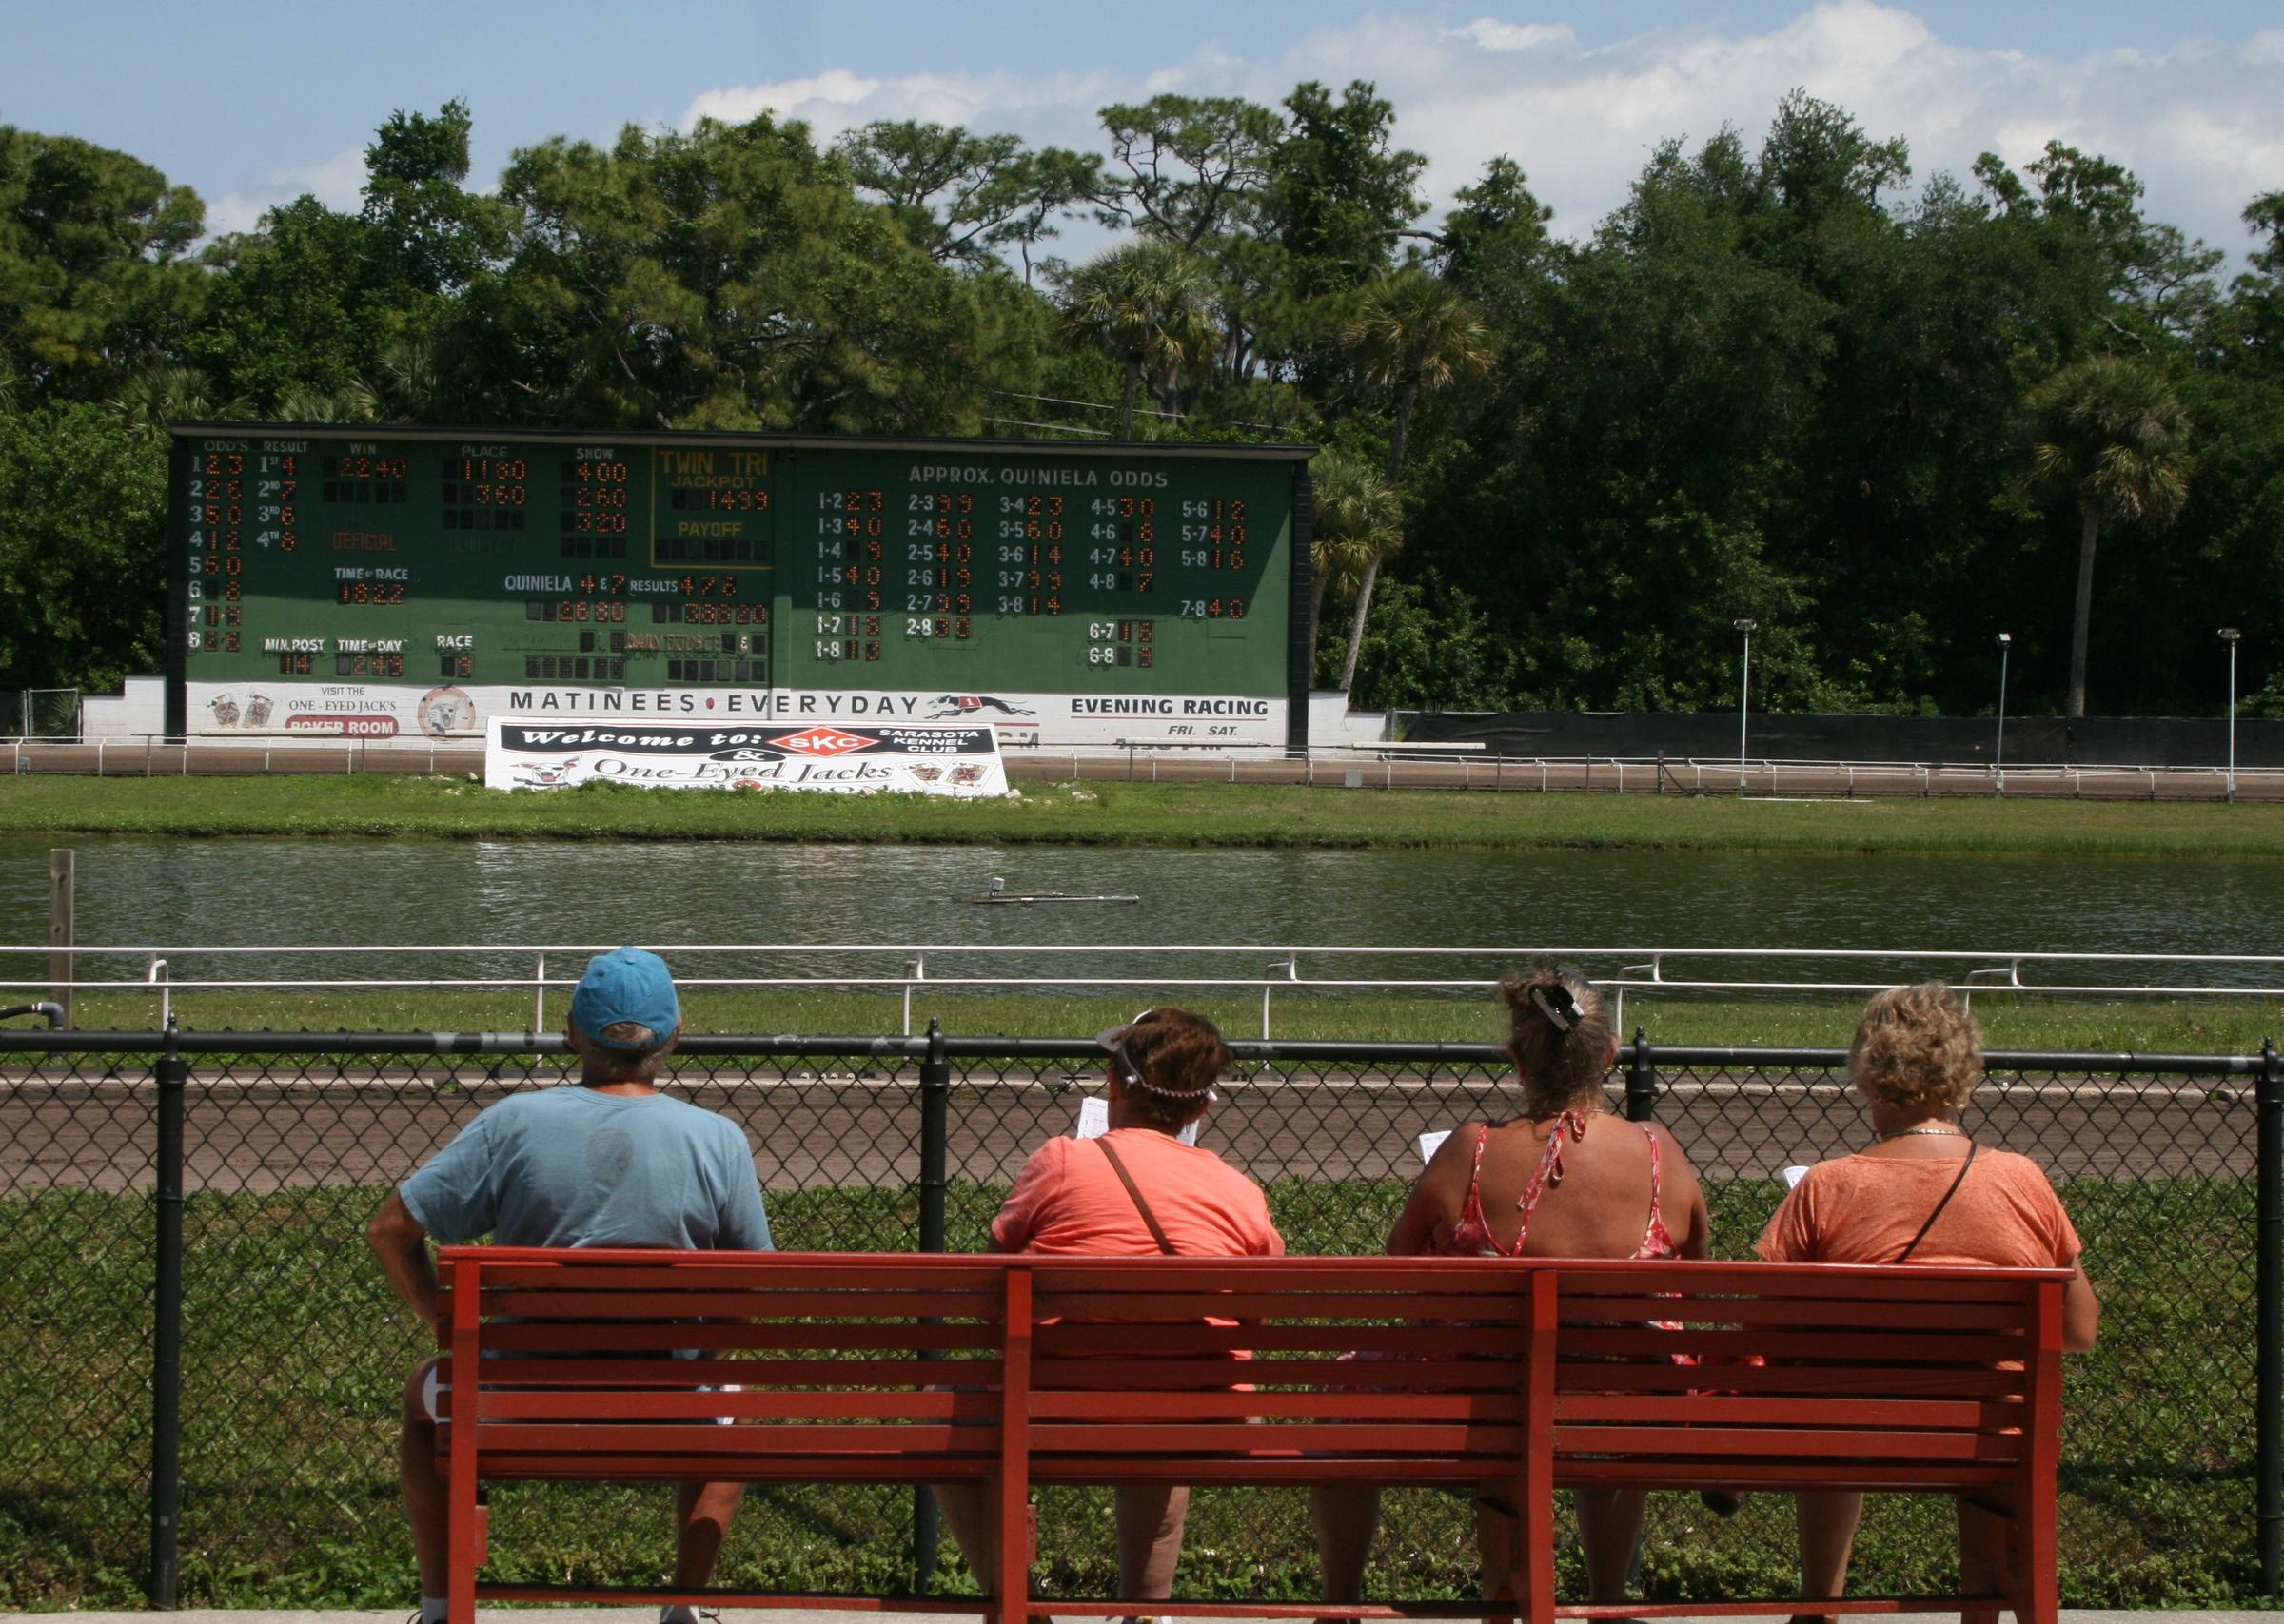 After 90 Years, Greyhound Dog Racing Comes To An End In